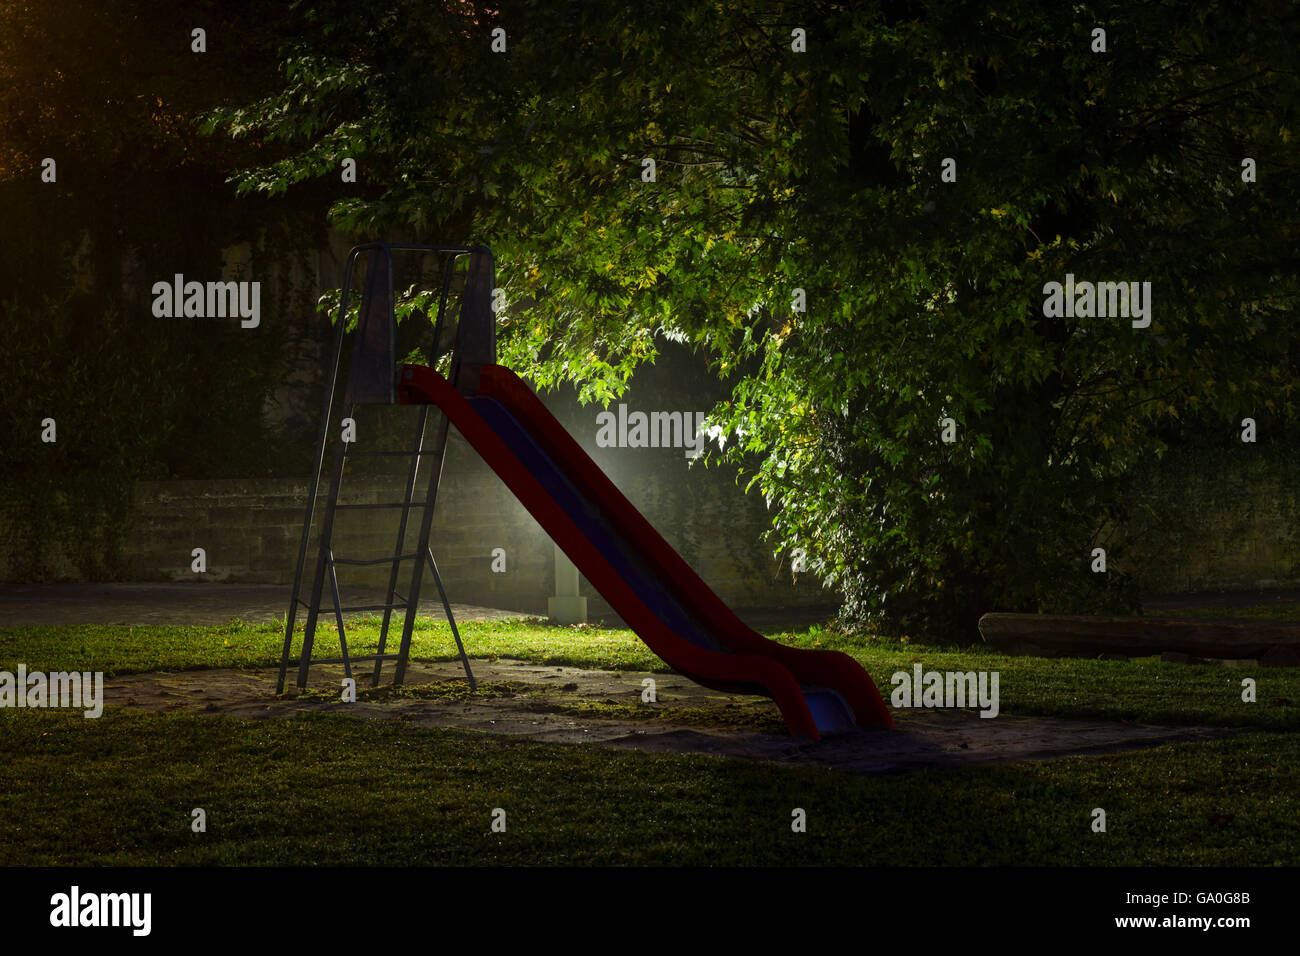 Empty Playground Night High Resolution Stock Photography And Images Alamy